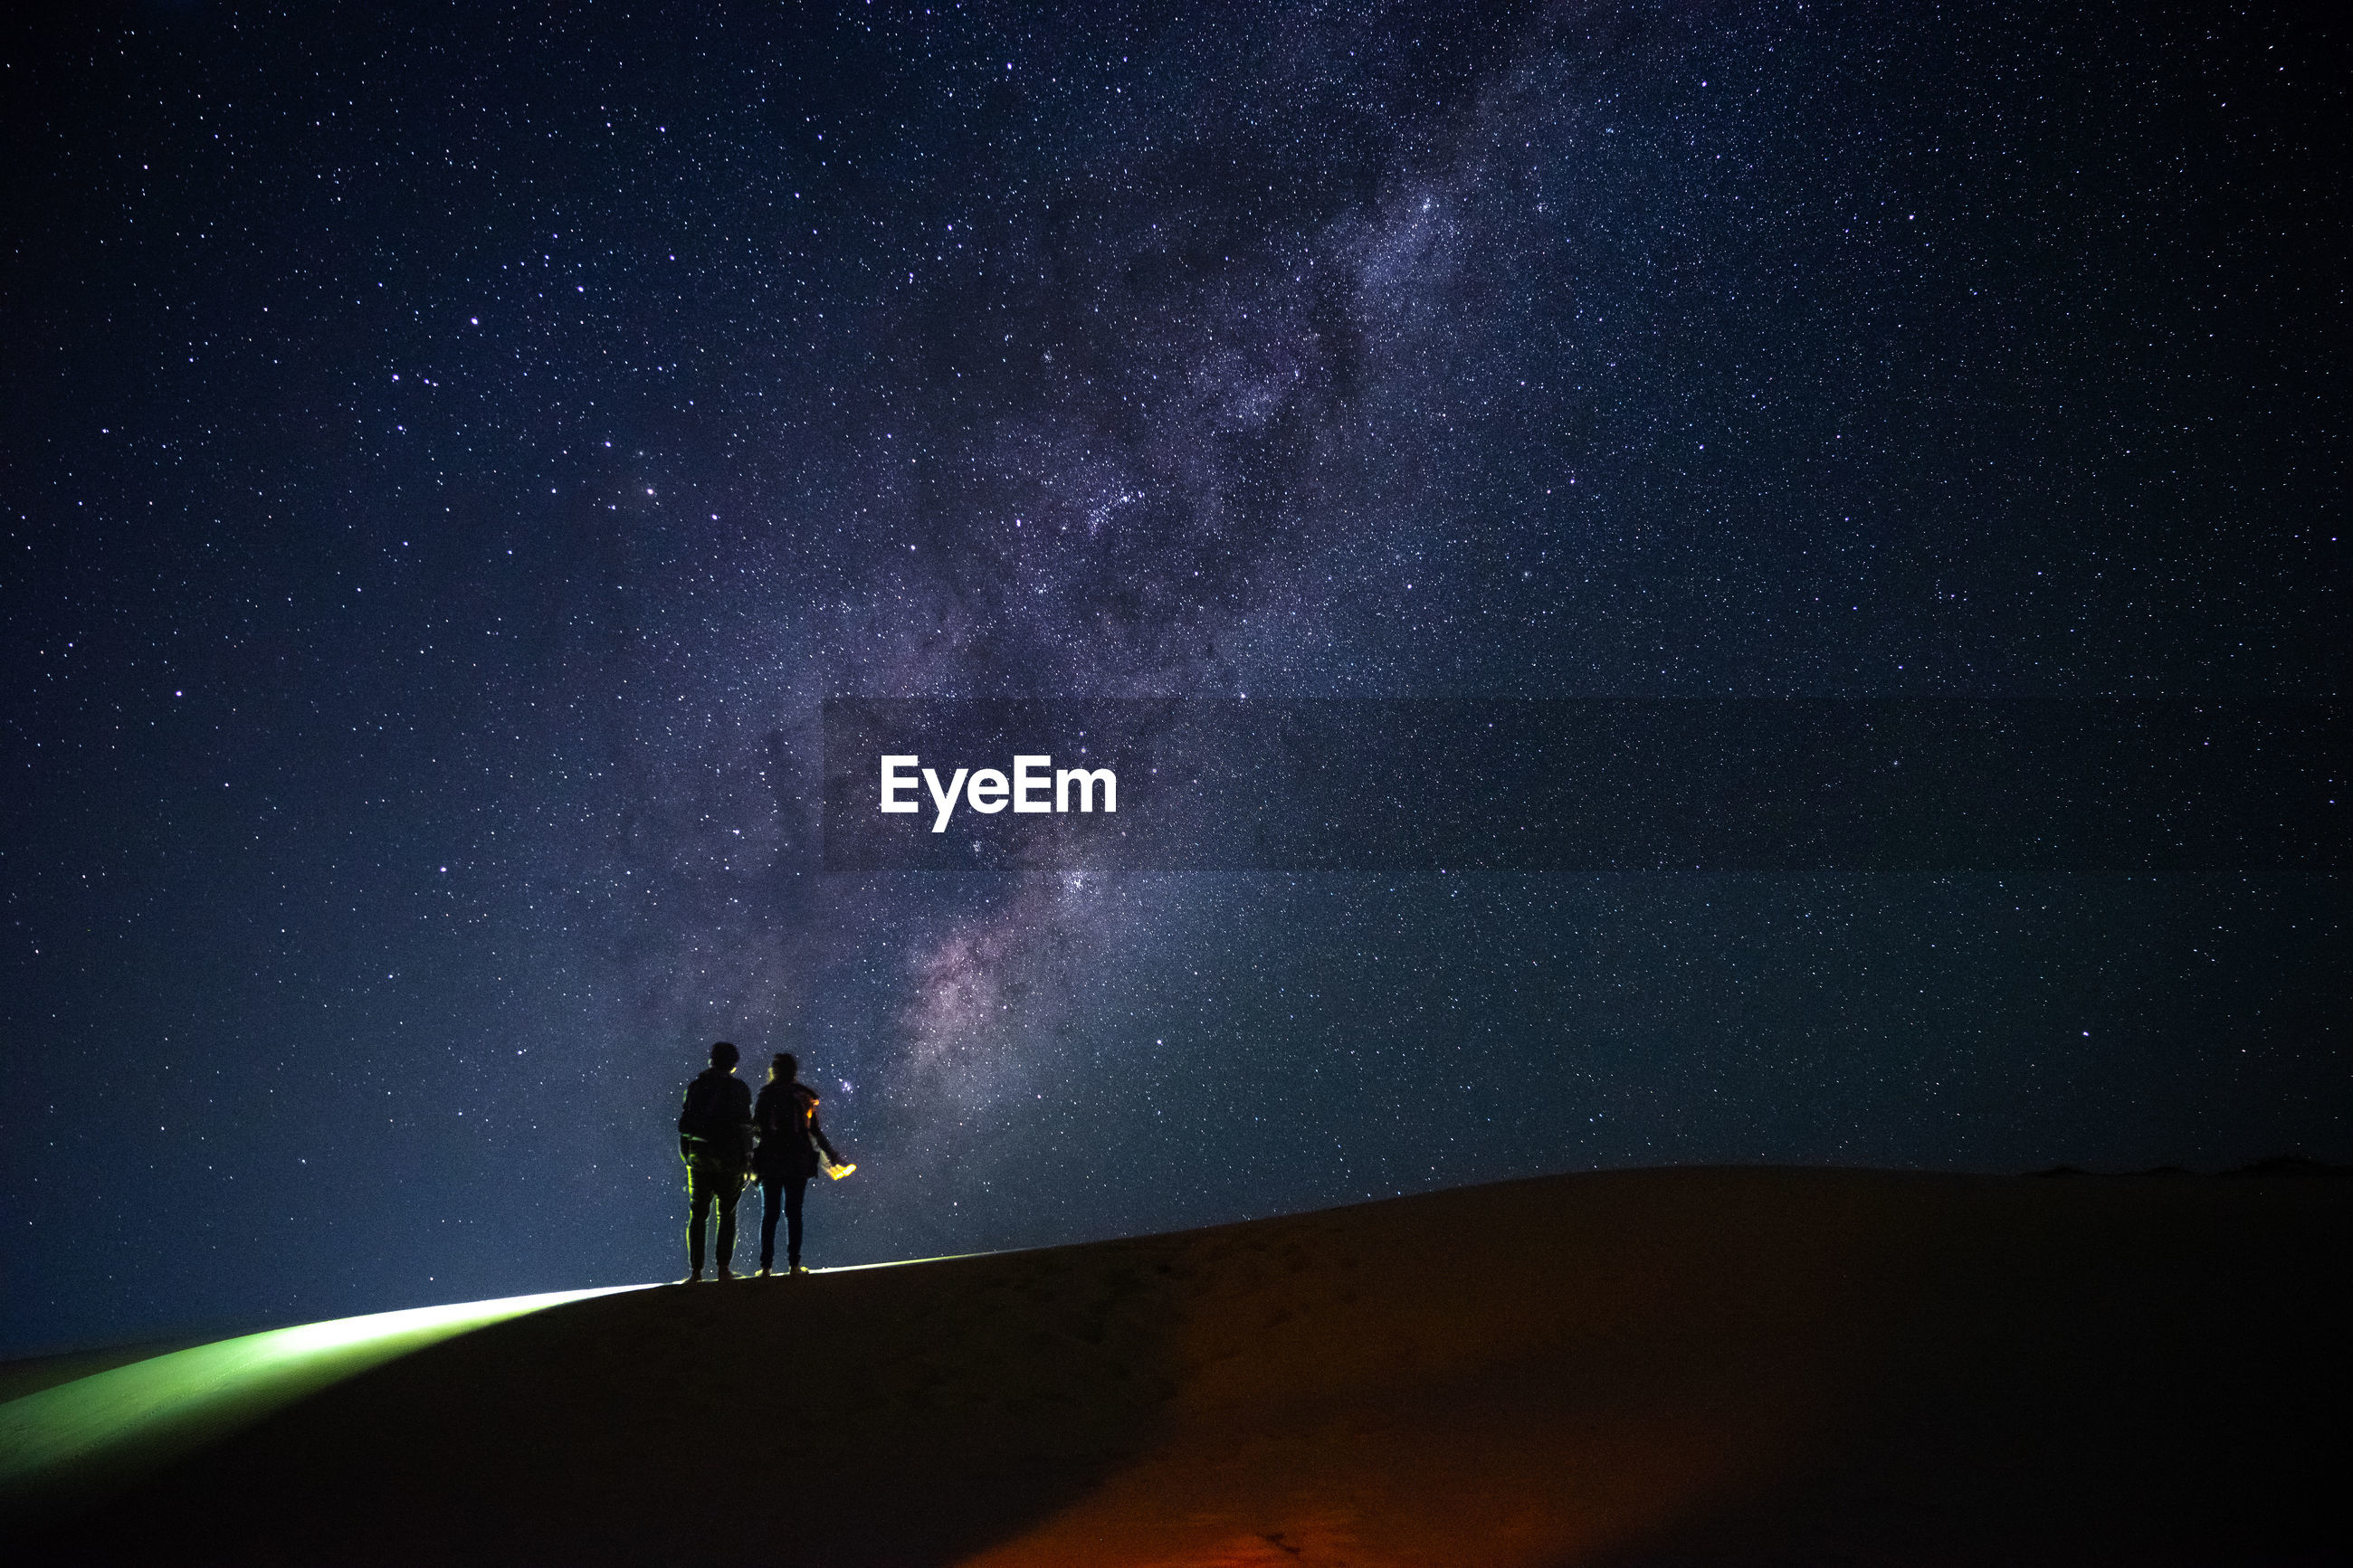 Silhouette couple standing on field against star field at night